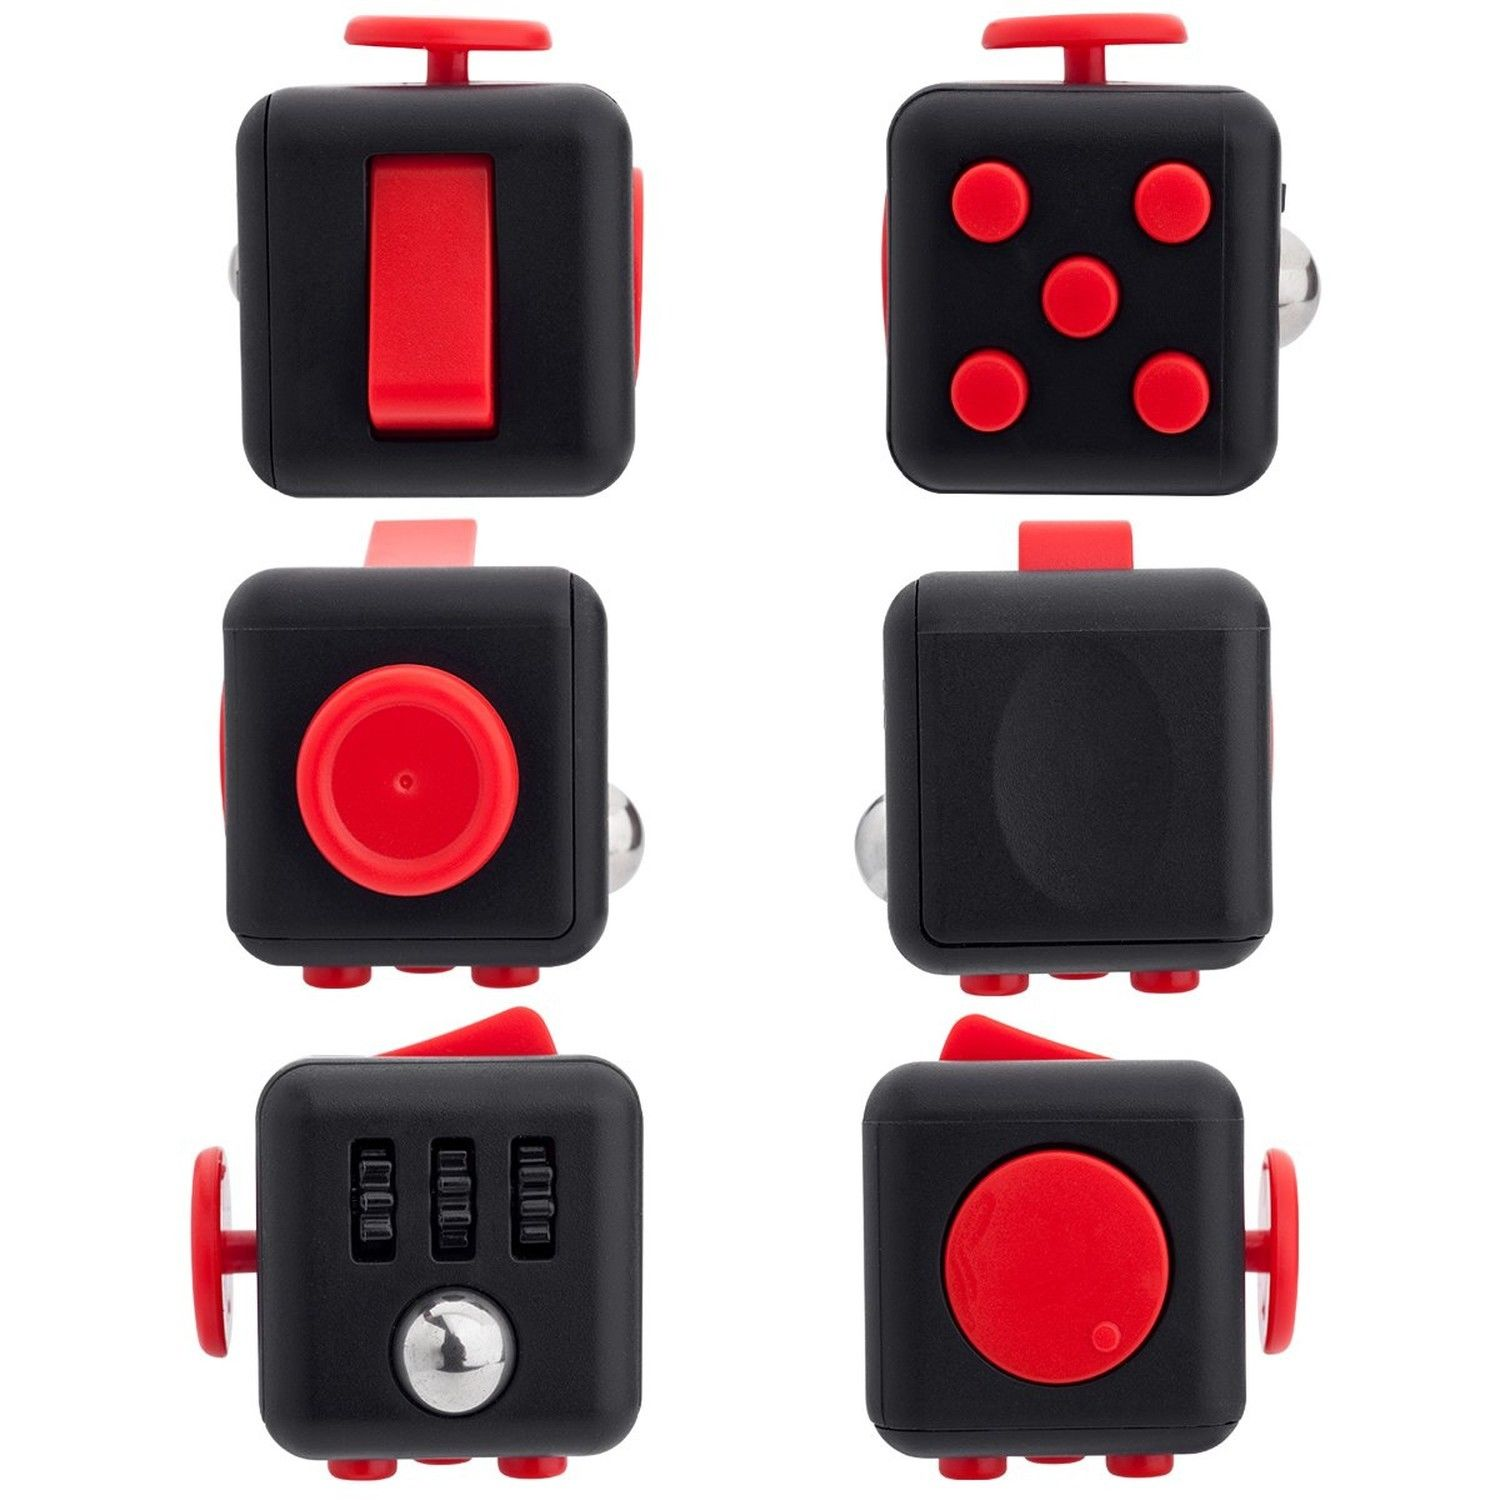 Black Red Fidget Cube Toy Anxiety Stress Attention Relief | eBay